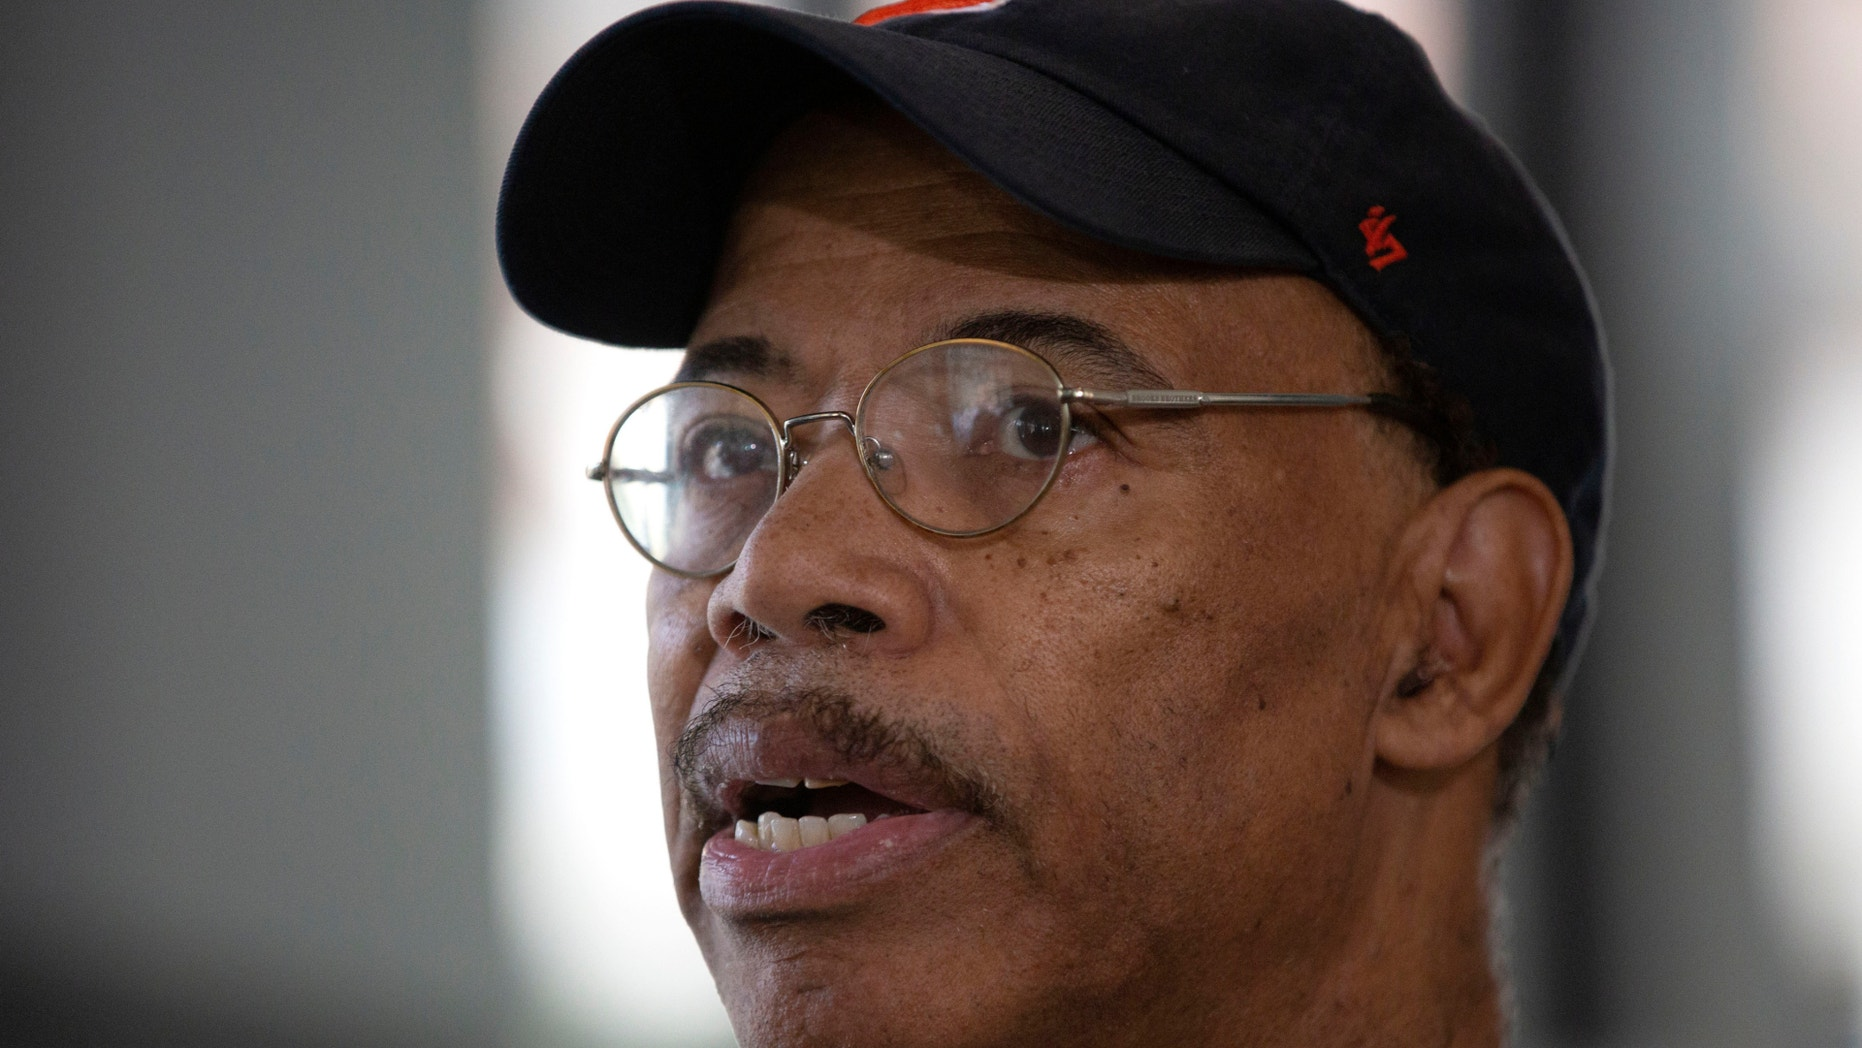 Former U.S. Rep. Mel Reynolds speaks to reporters after receiving a six- month prison sentence for failing to file tax returns for four years after a hearing in Chicago, May 10, 2018.